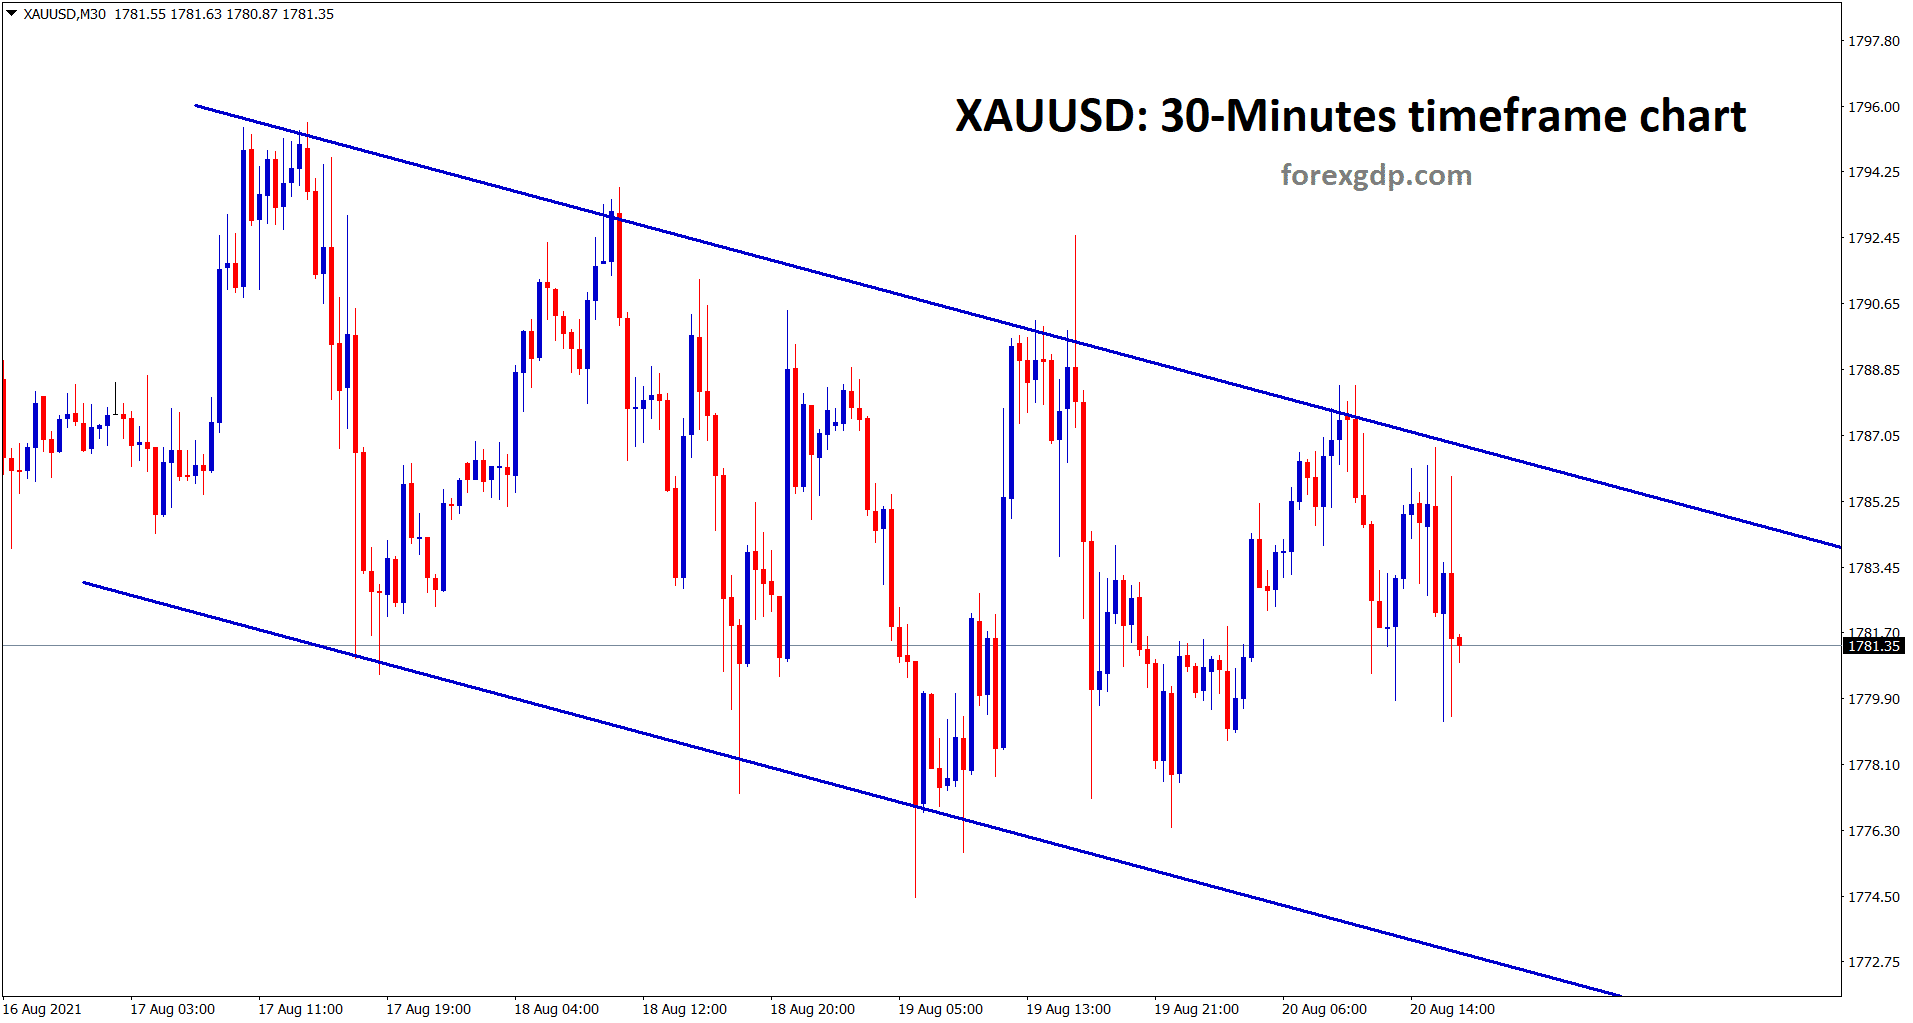 Gold is still moving in a Descending channel range for a long time